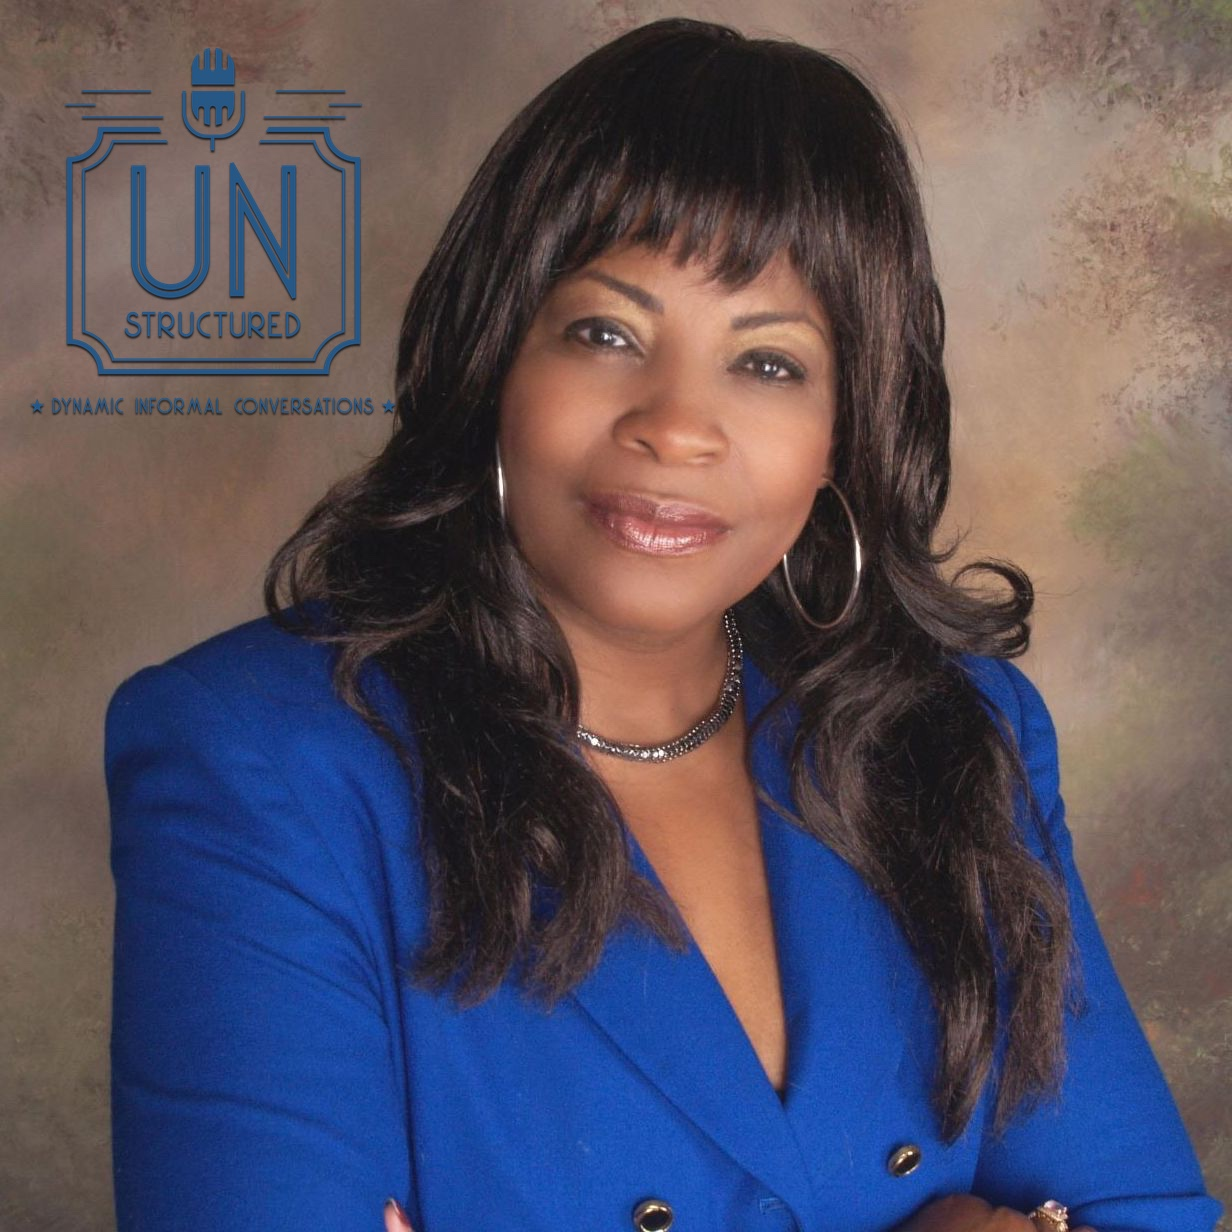 099 - Toni Crowe - Unique wide-ranging and well-researched unstructured interviews hosted by Eric Hunley UnstructuredPod Dynamic Informal Conversations